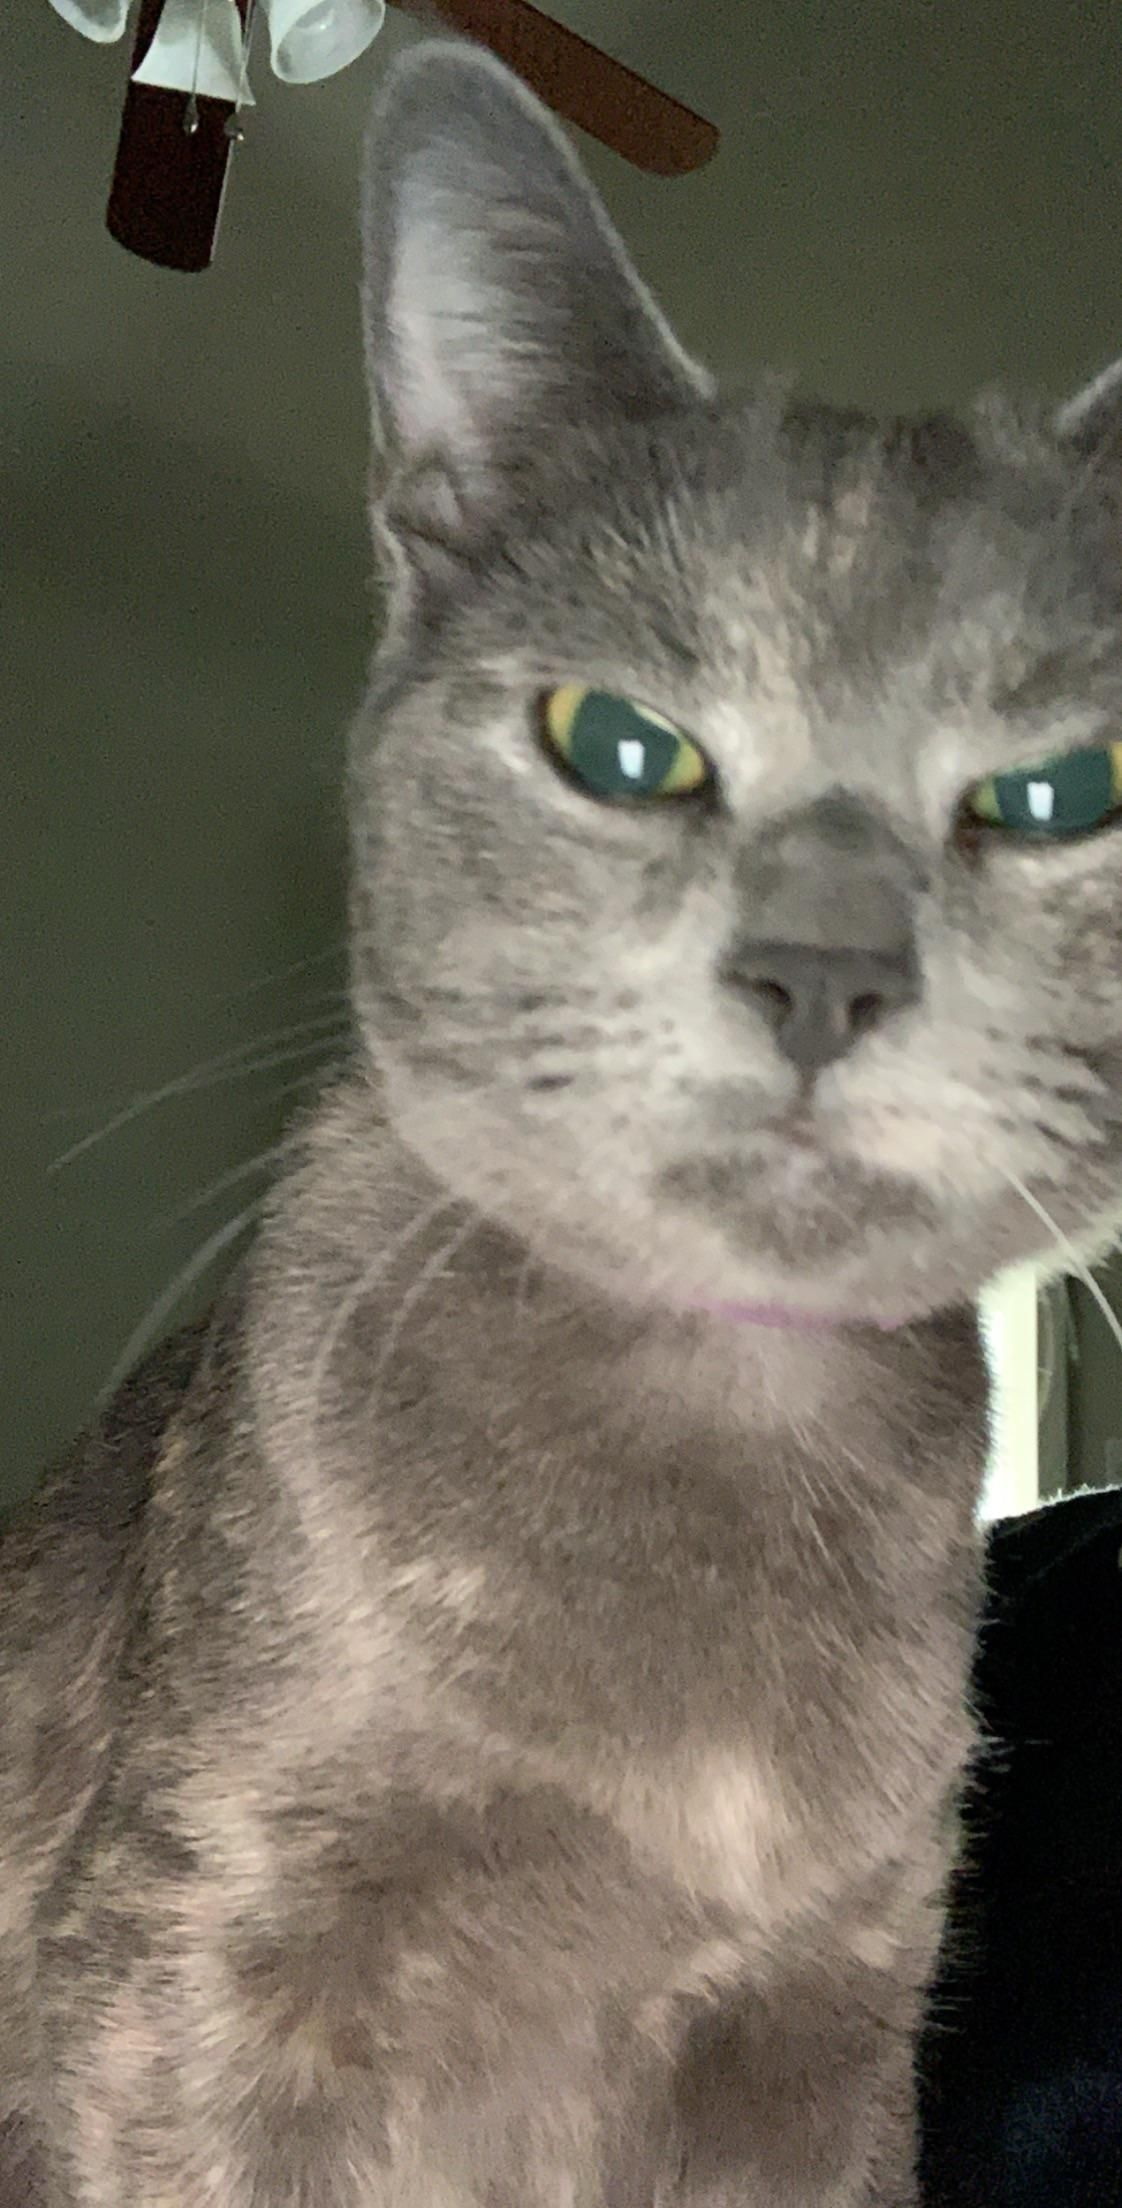 Mean Mugging Kitty is not happy about being photographed